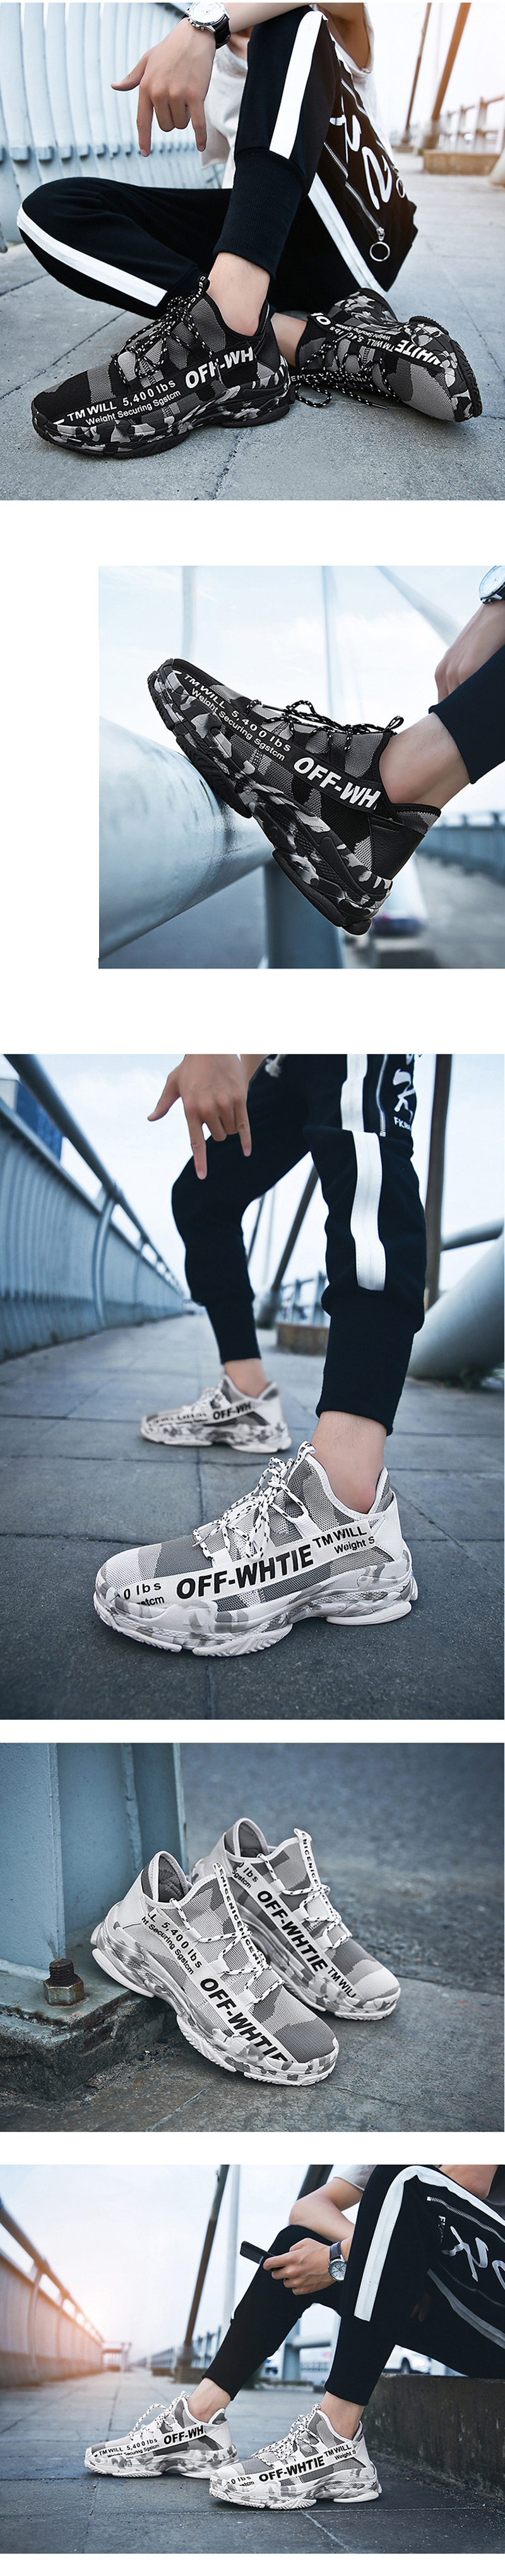 Outdoor Men Lace-up Athietic Breathable Mesh Male Running Jogging Walking Sports Shoes Sneakers